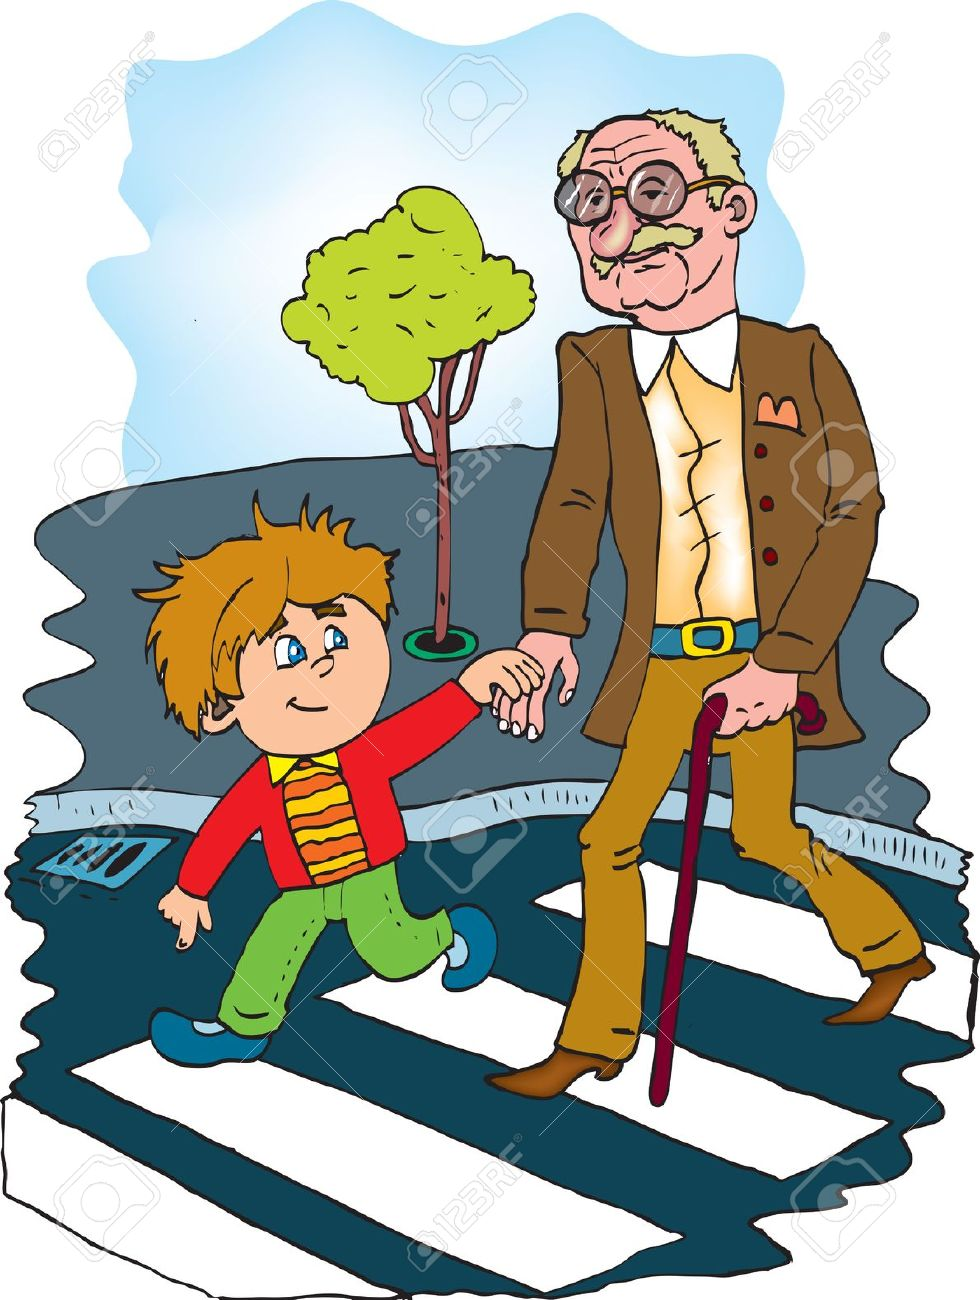 Boy and old man clipart.